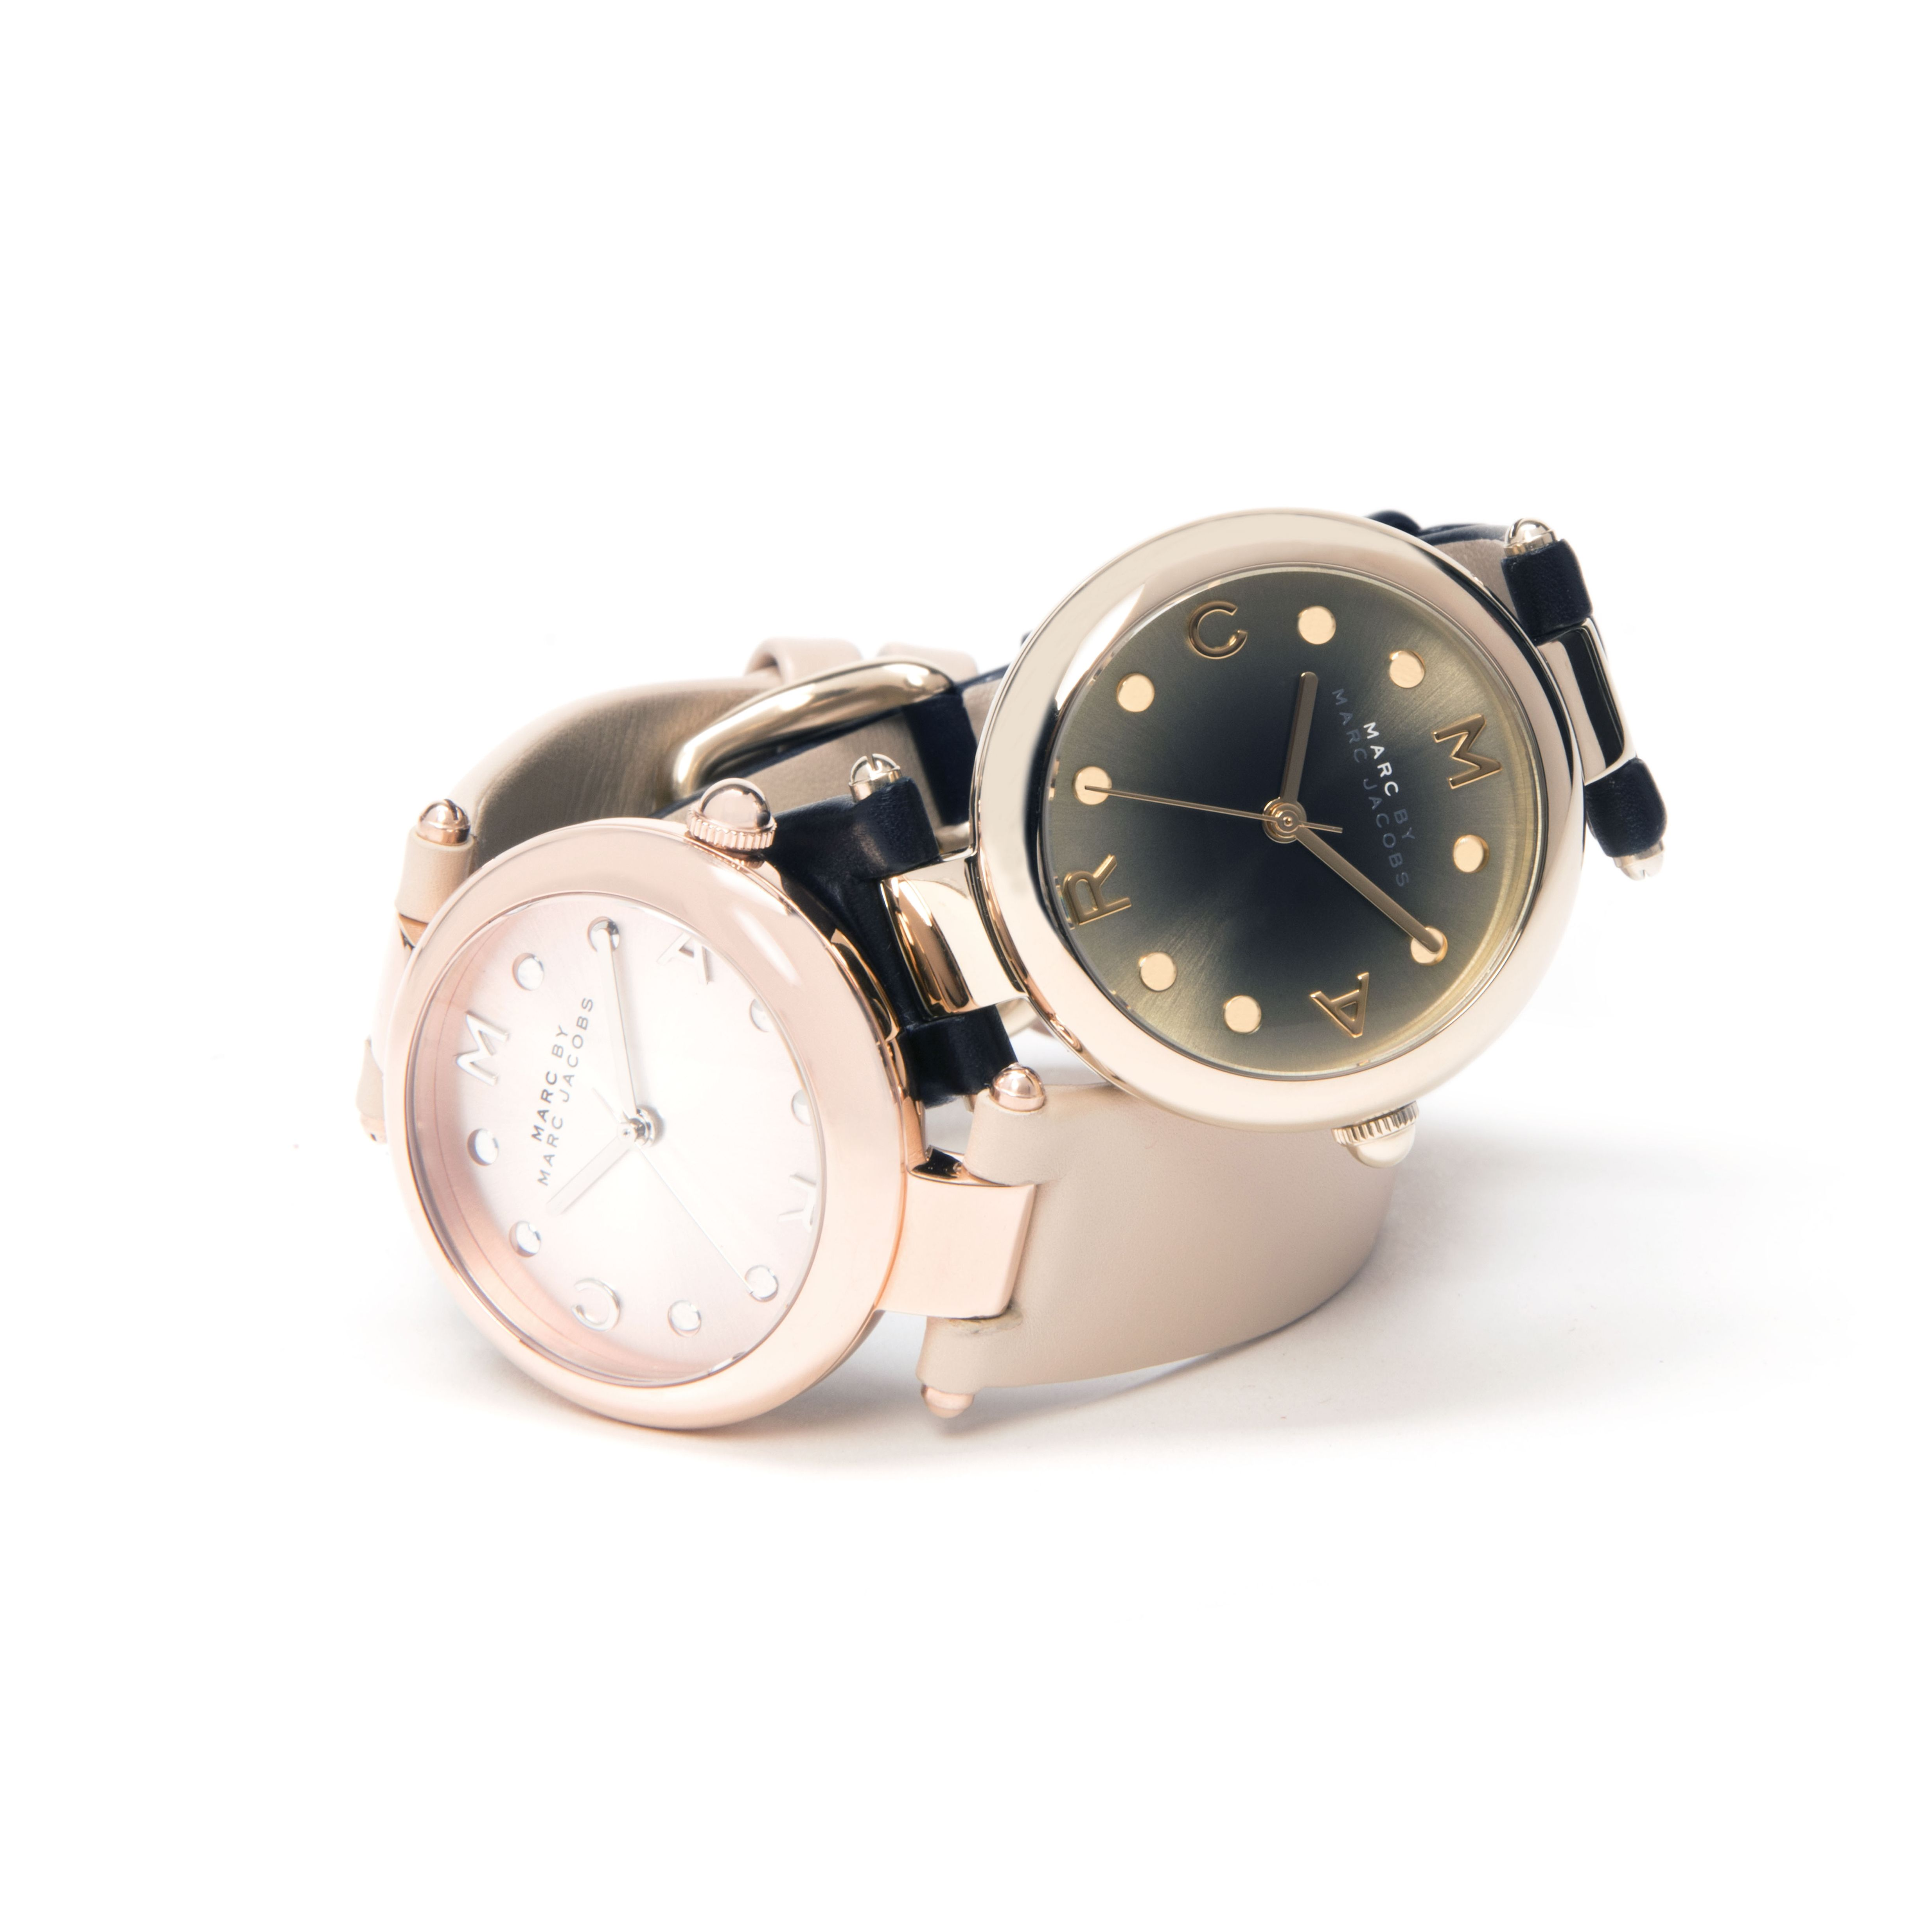 Marc bathroom fittings price list - Women S Accessories Marc Jacobs Watches